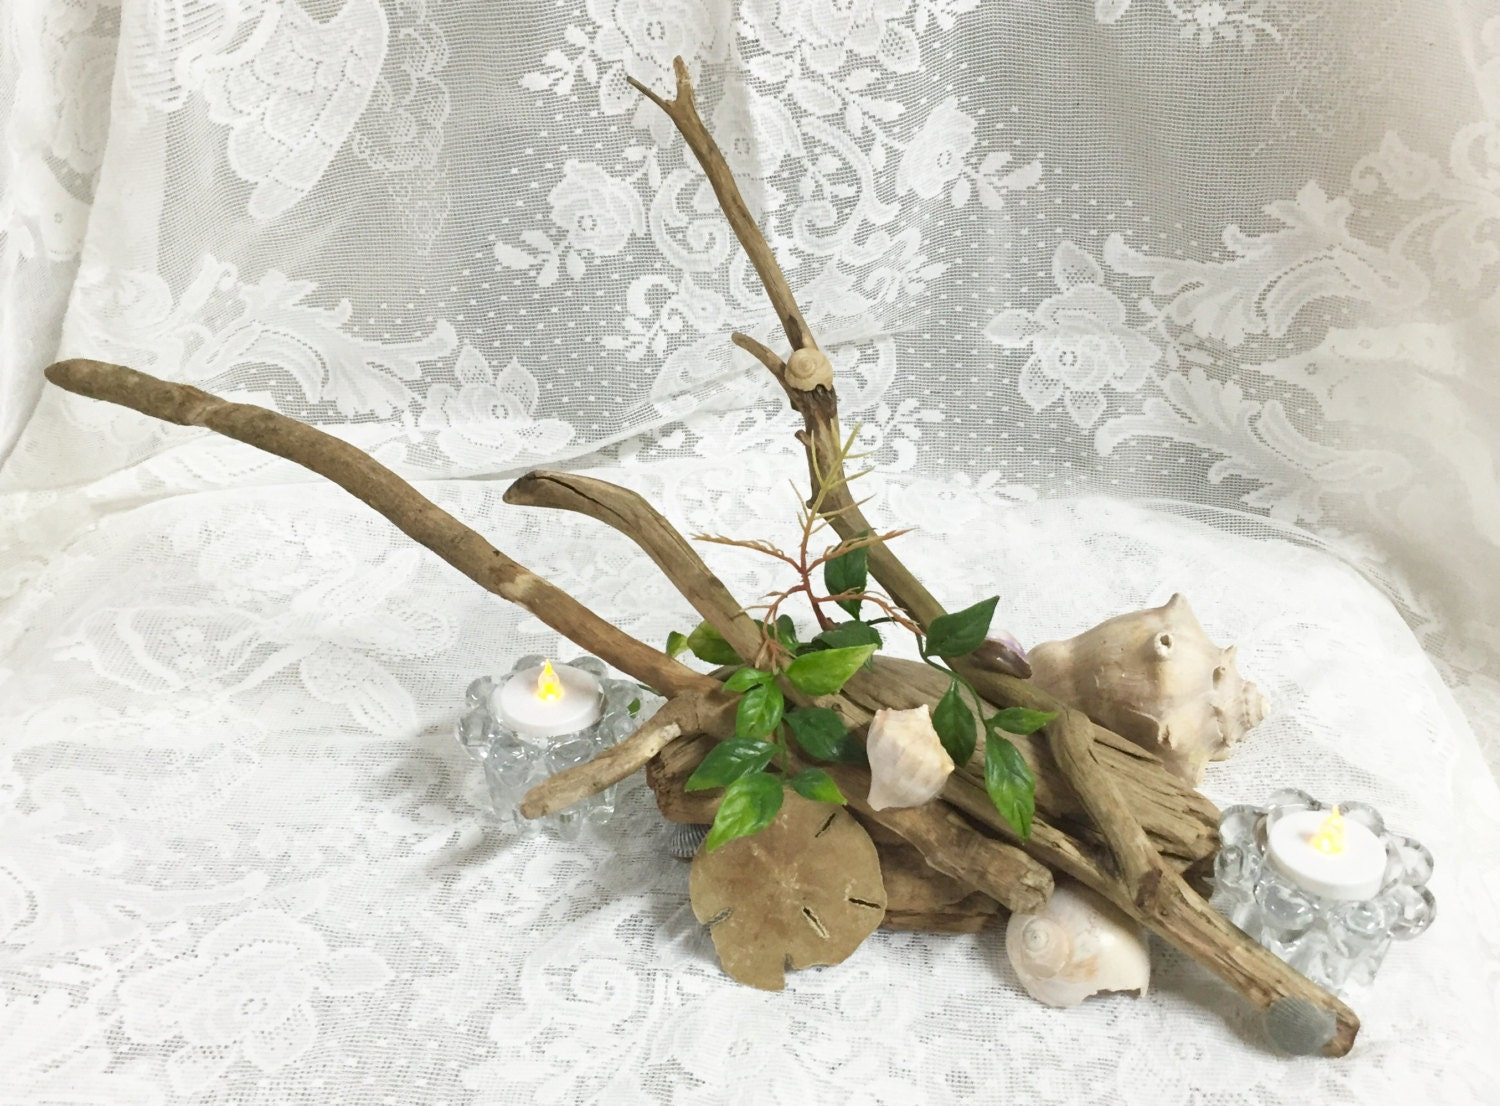 Driftwood Reception Table Centerpiece: Terrarium, Taxidermy ...